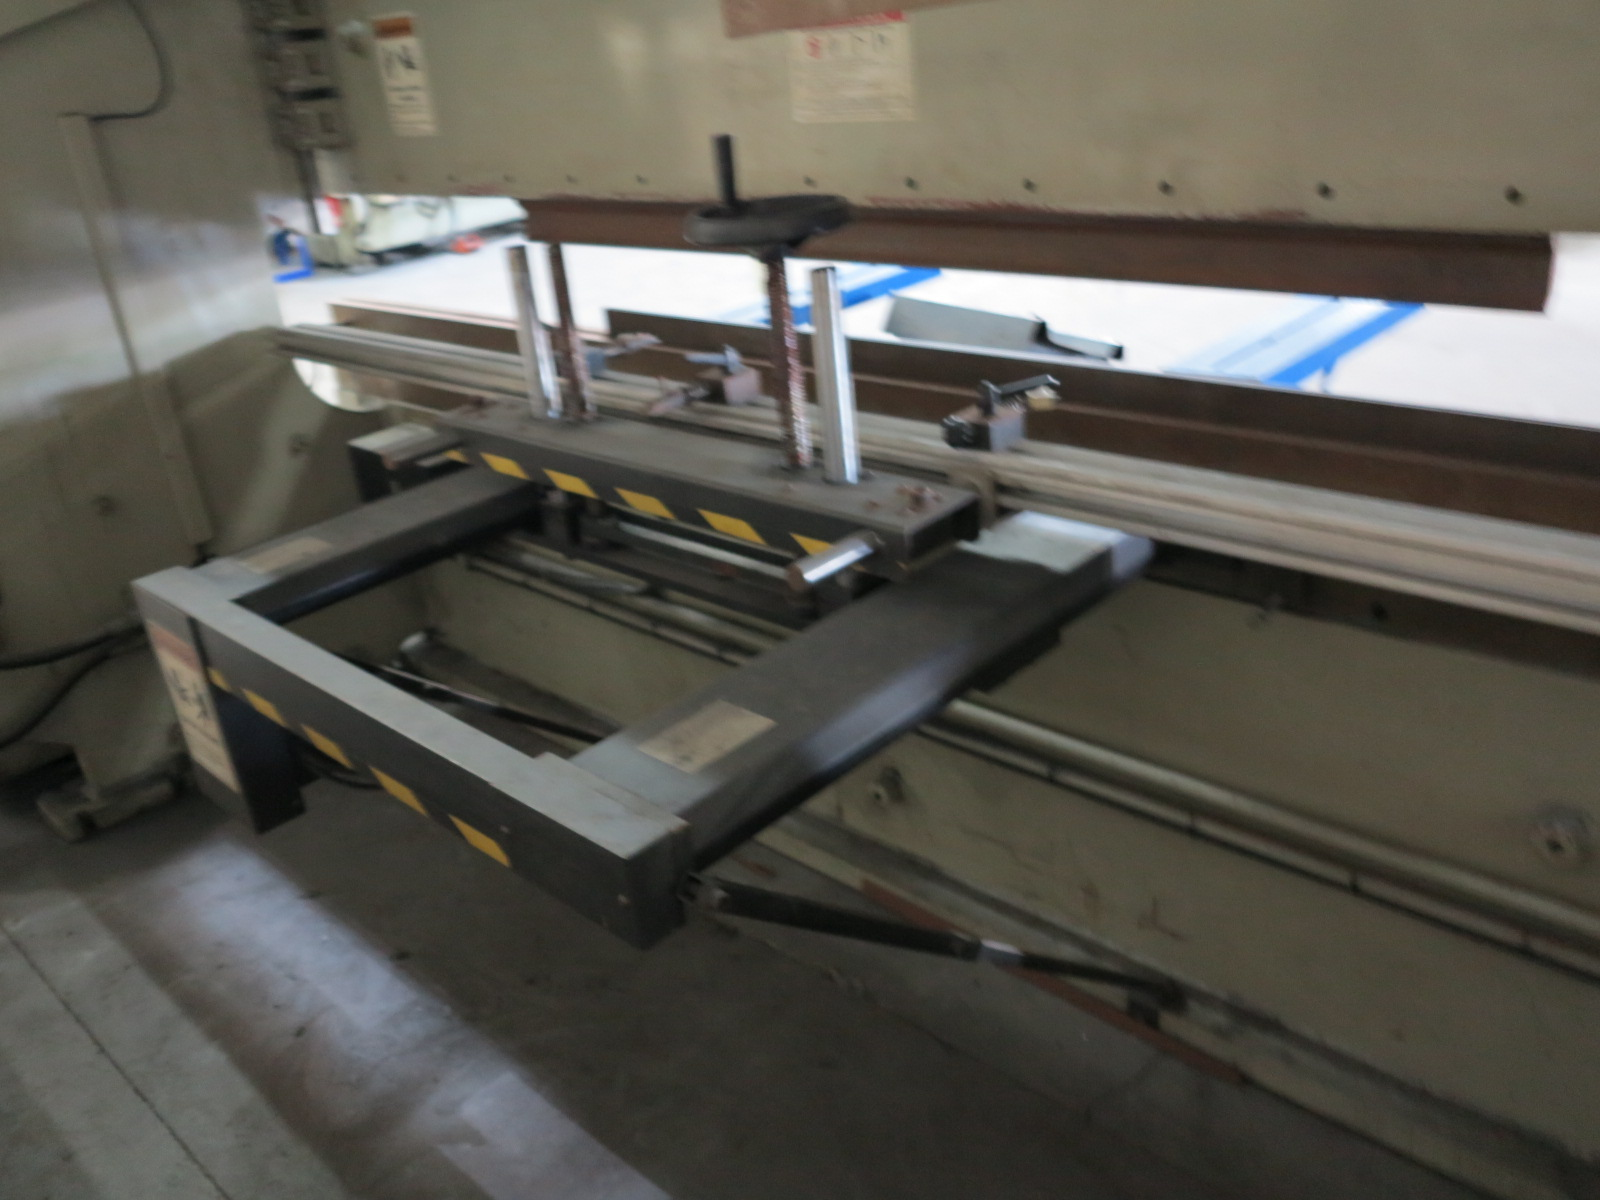 1999 ACCURPRESS BRAKE, MODEL 7017512, 175-TON X 12', E&S CONTROL, CNC BACKGAUGE, SUPPORTS, S/N 5758 - Image 5 of 7